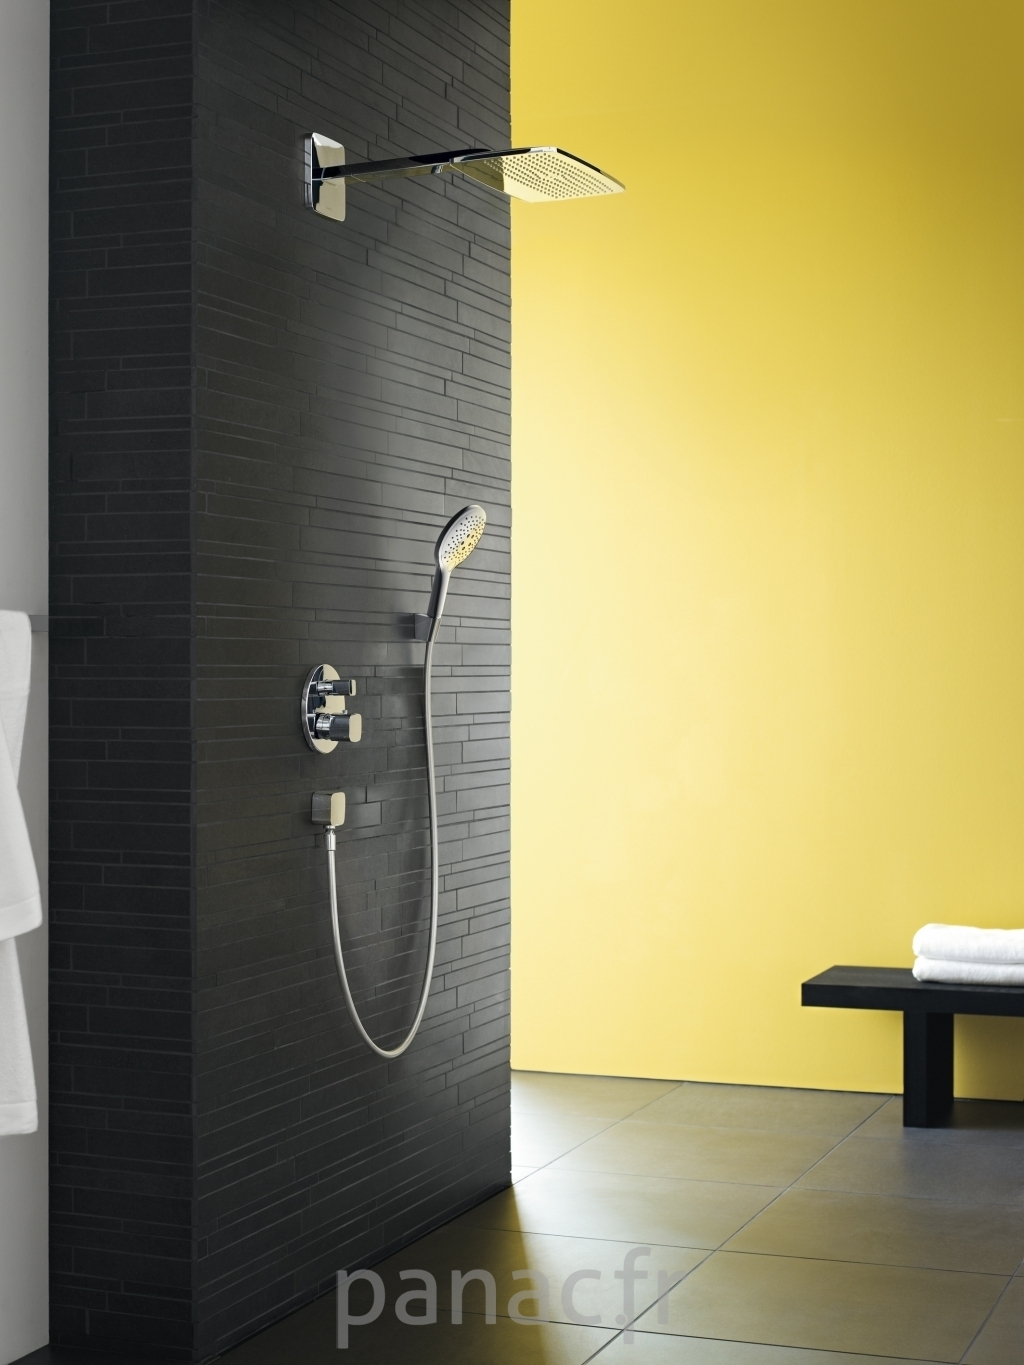 hansgrohe mitigeurs colonnes de douche. Black Bedroom Furniture Sets. Home Design Ideas